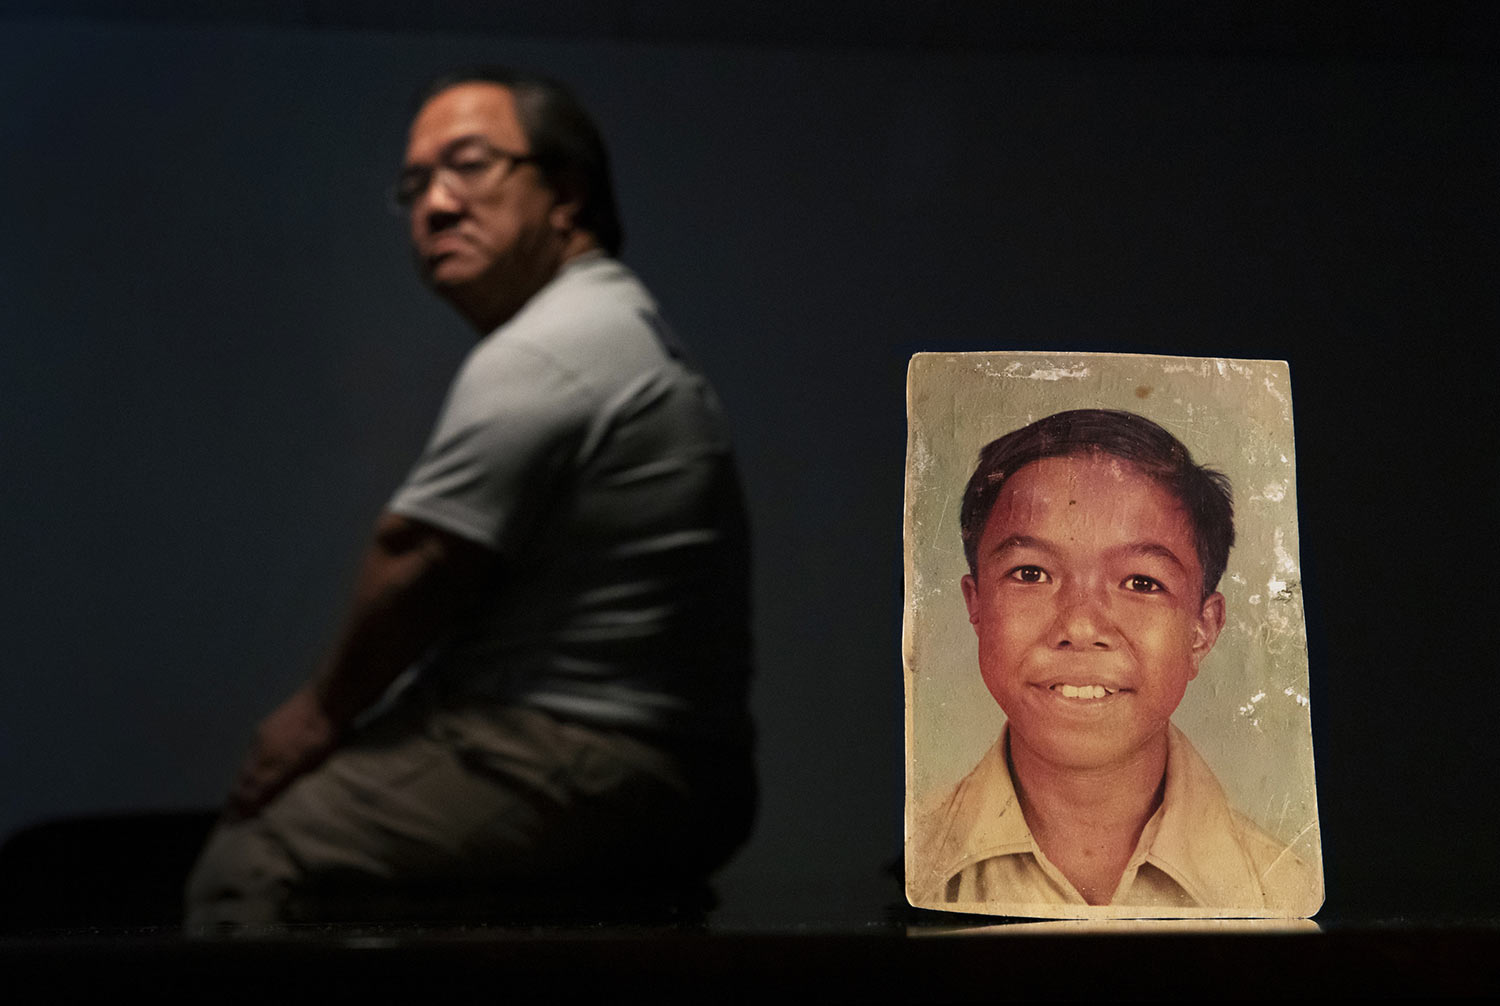 C.M.V., 58, sits behind a photo of himself when he was about 11 years old. (AP Photo/David Goldman)